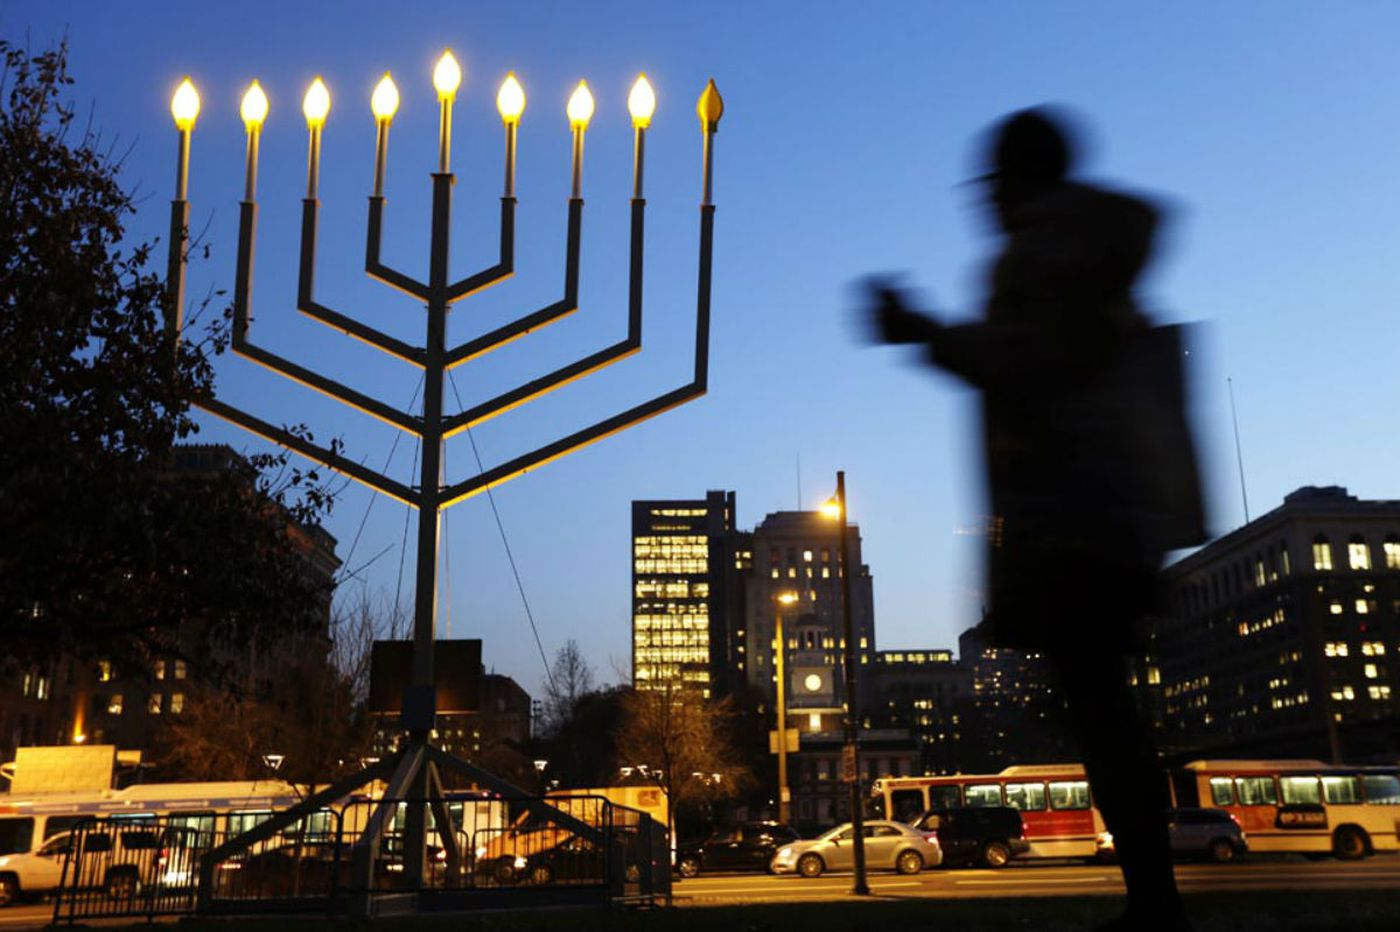 Commentary: On the first night of Hanukkah ...